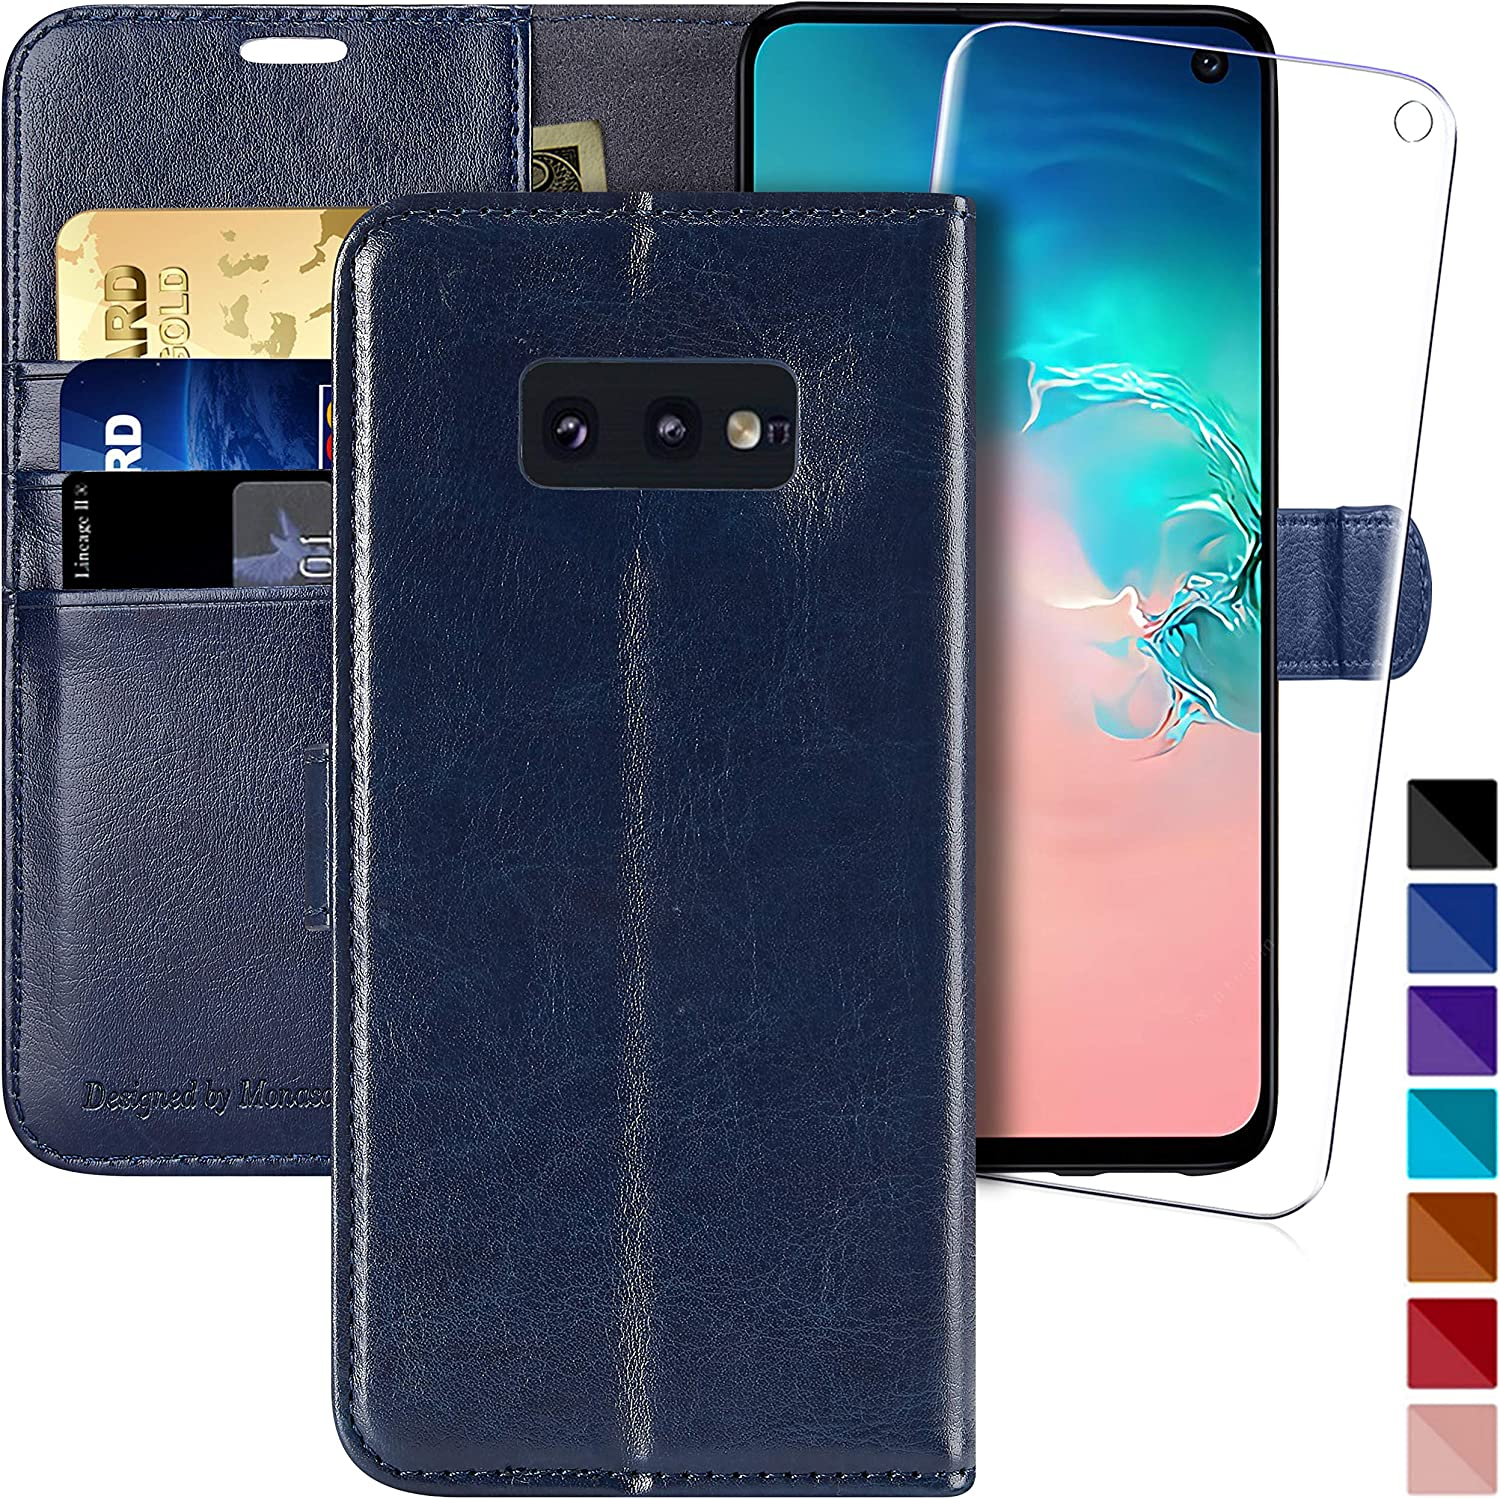 Galaxy s10e Wallet Case, 5.8 inch,MONASAY [Included Screen Protector] Flip Folio Leather Cell Phone Cover with Credit Card Holder for Samsung Galaxy s10e